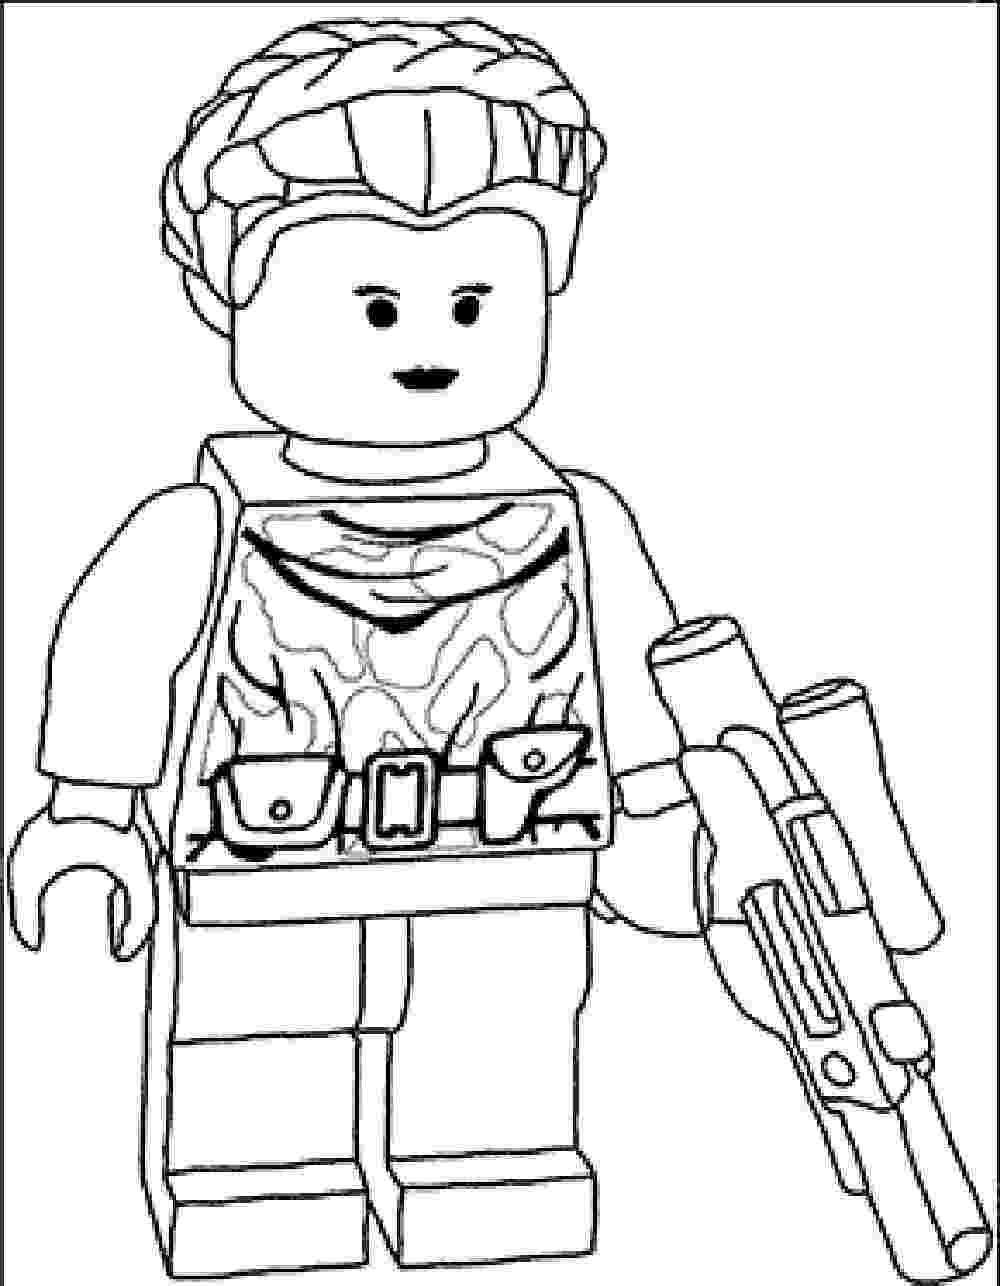 colouring pages lego star wars lego star wars coloring pages best coloring pages for kids lego pages star colouring wars 1 1